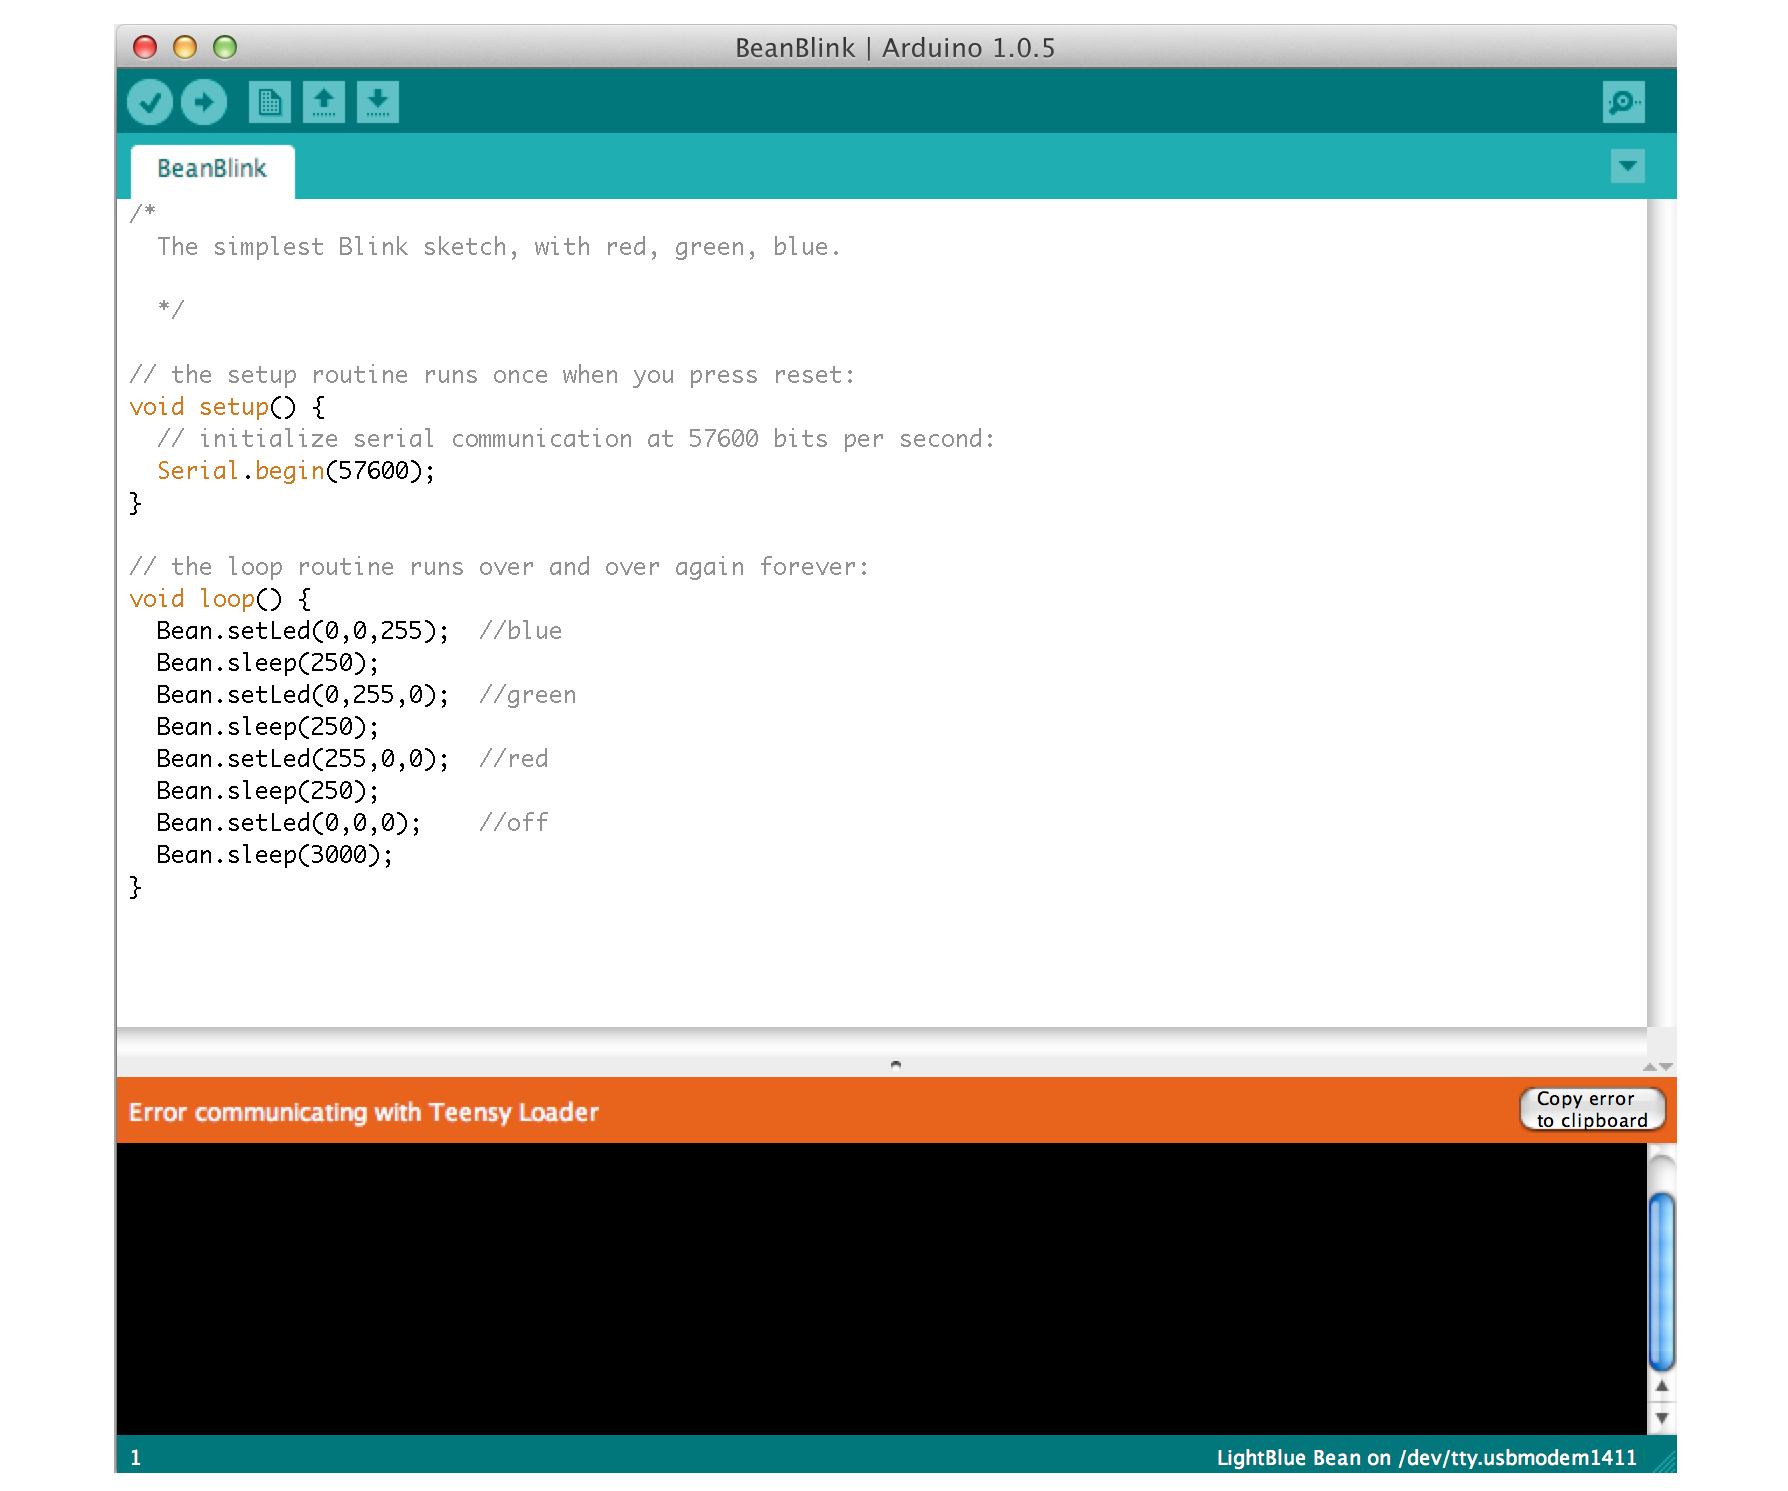 The Arduino IDE having problems communicating with the Teensy Loader.